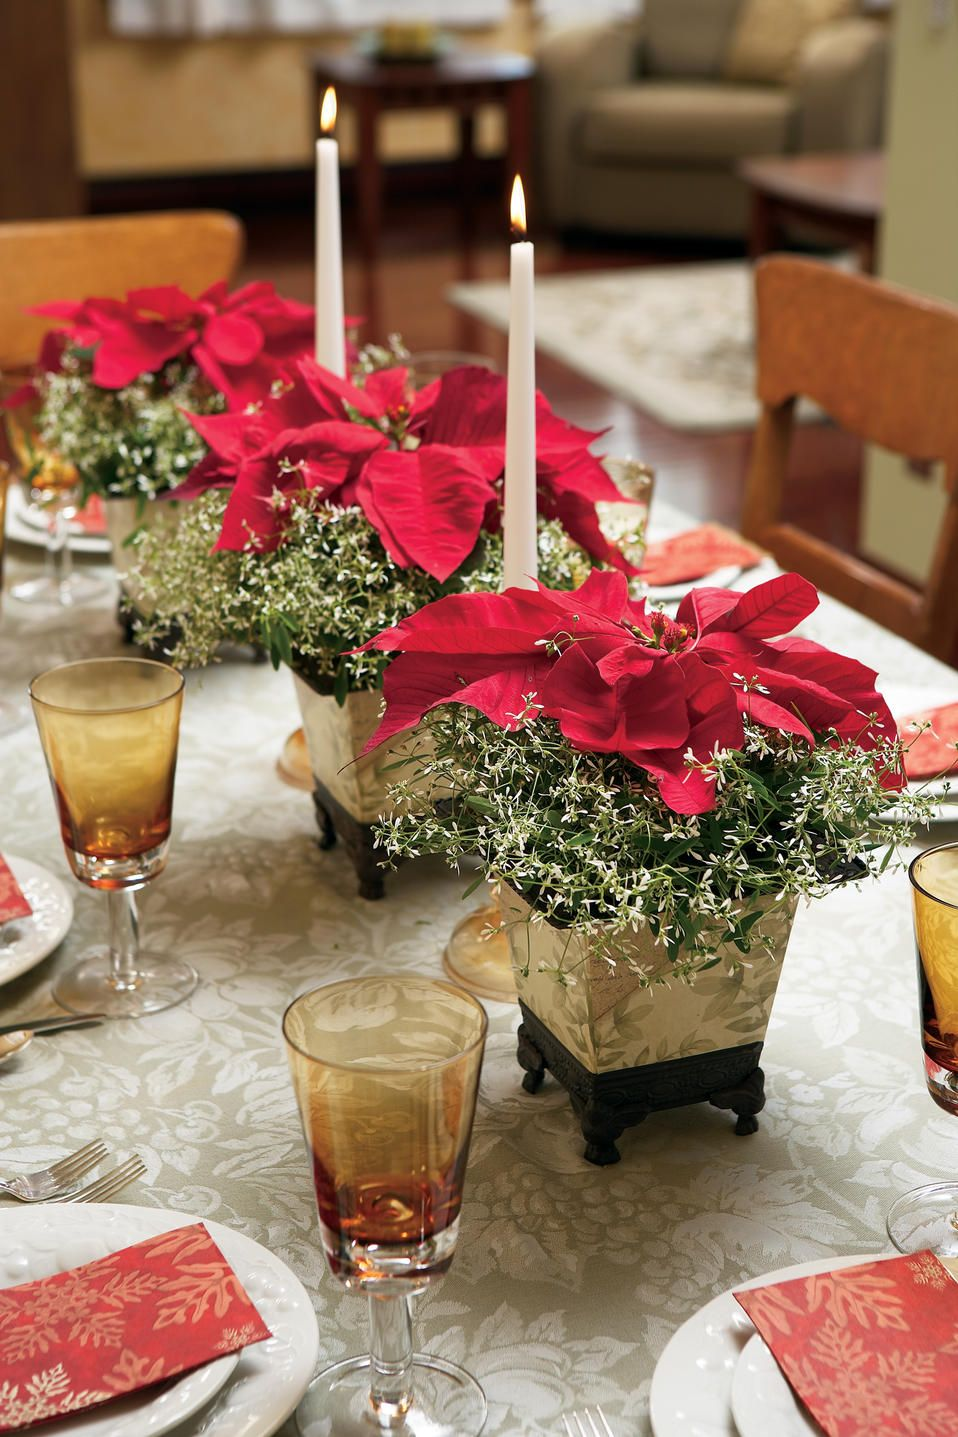 While Decorating Your Home For Winter Don T Forget To Include Diamond Frost Euphorbia To C Christmas Table Decorations Christmas Centerpieces Christmas Flowers